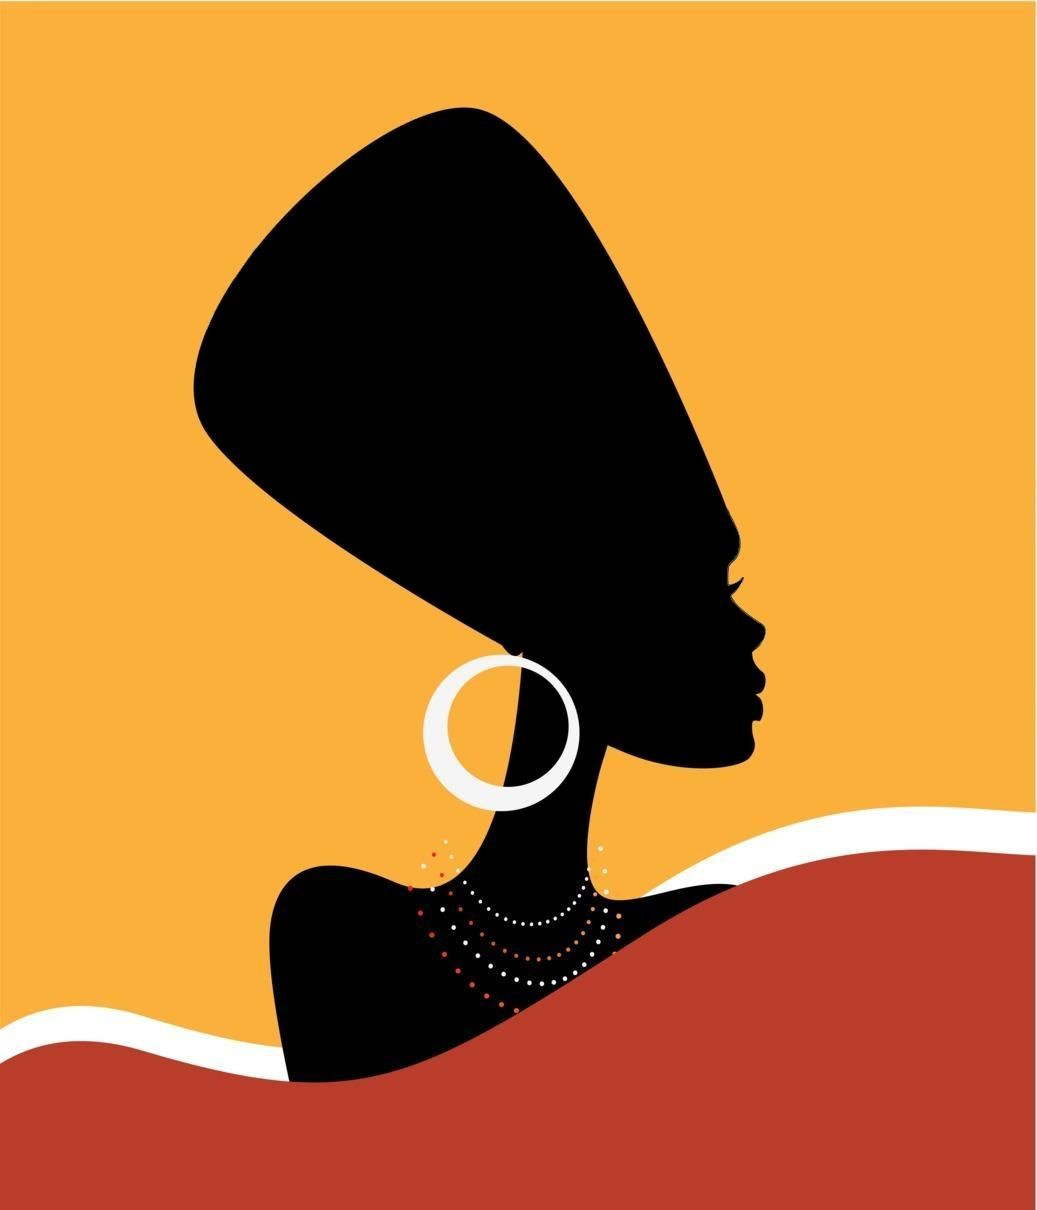 Uncredited Stock Image Nefertiti Contemporary African Inspired Silhouette Profile African Art Paintings Africa Art Art